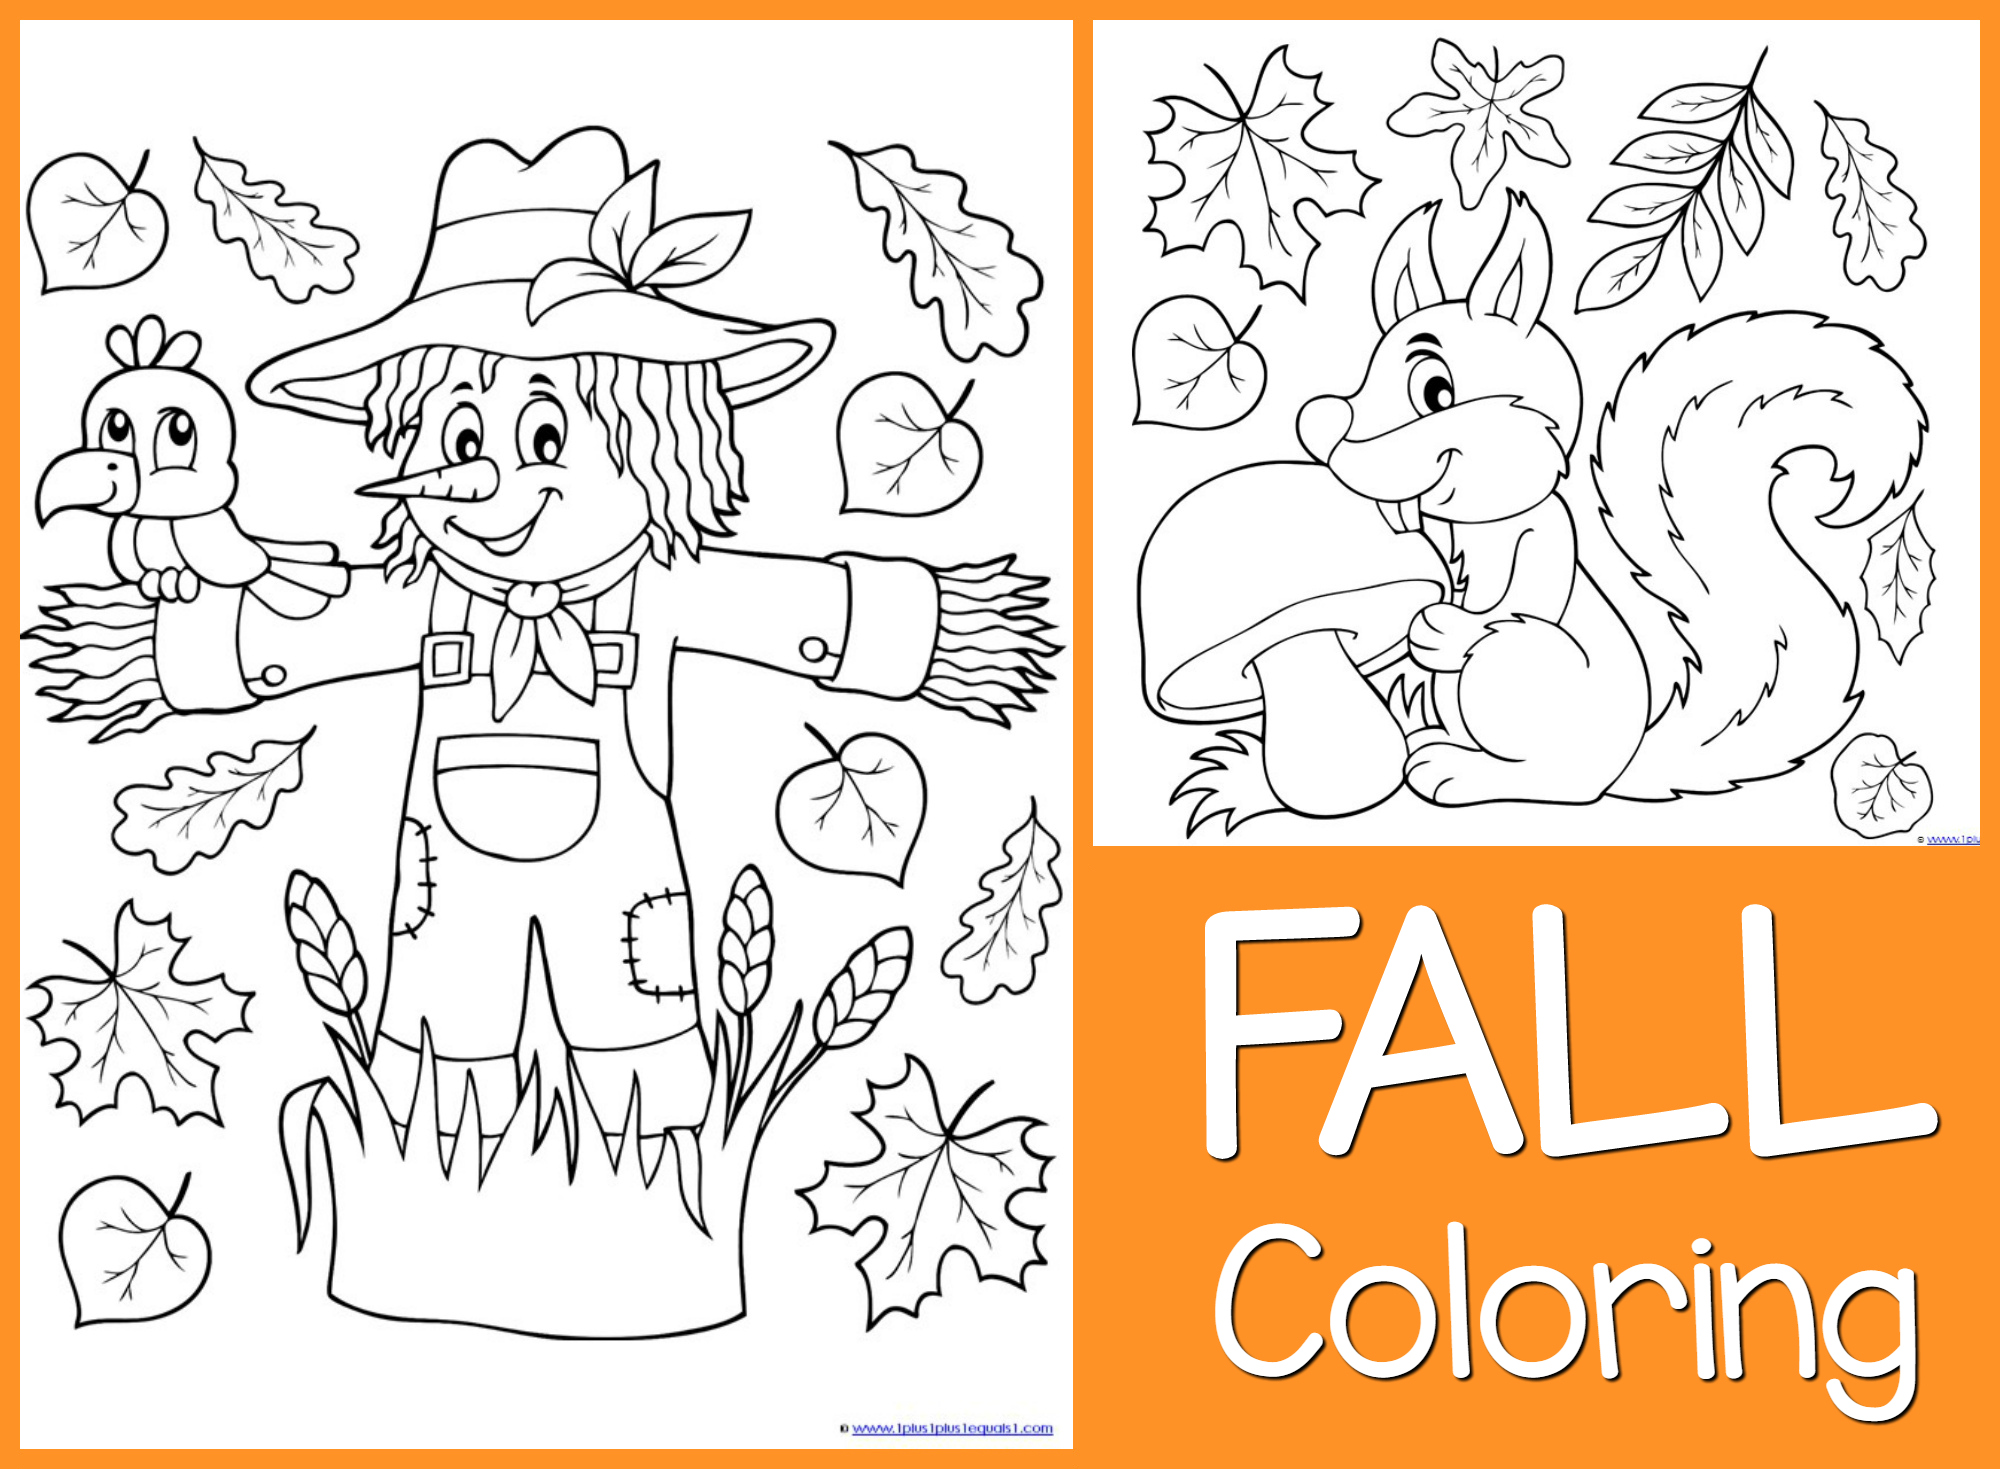 just color free coloring printables - Color For Free